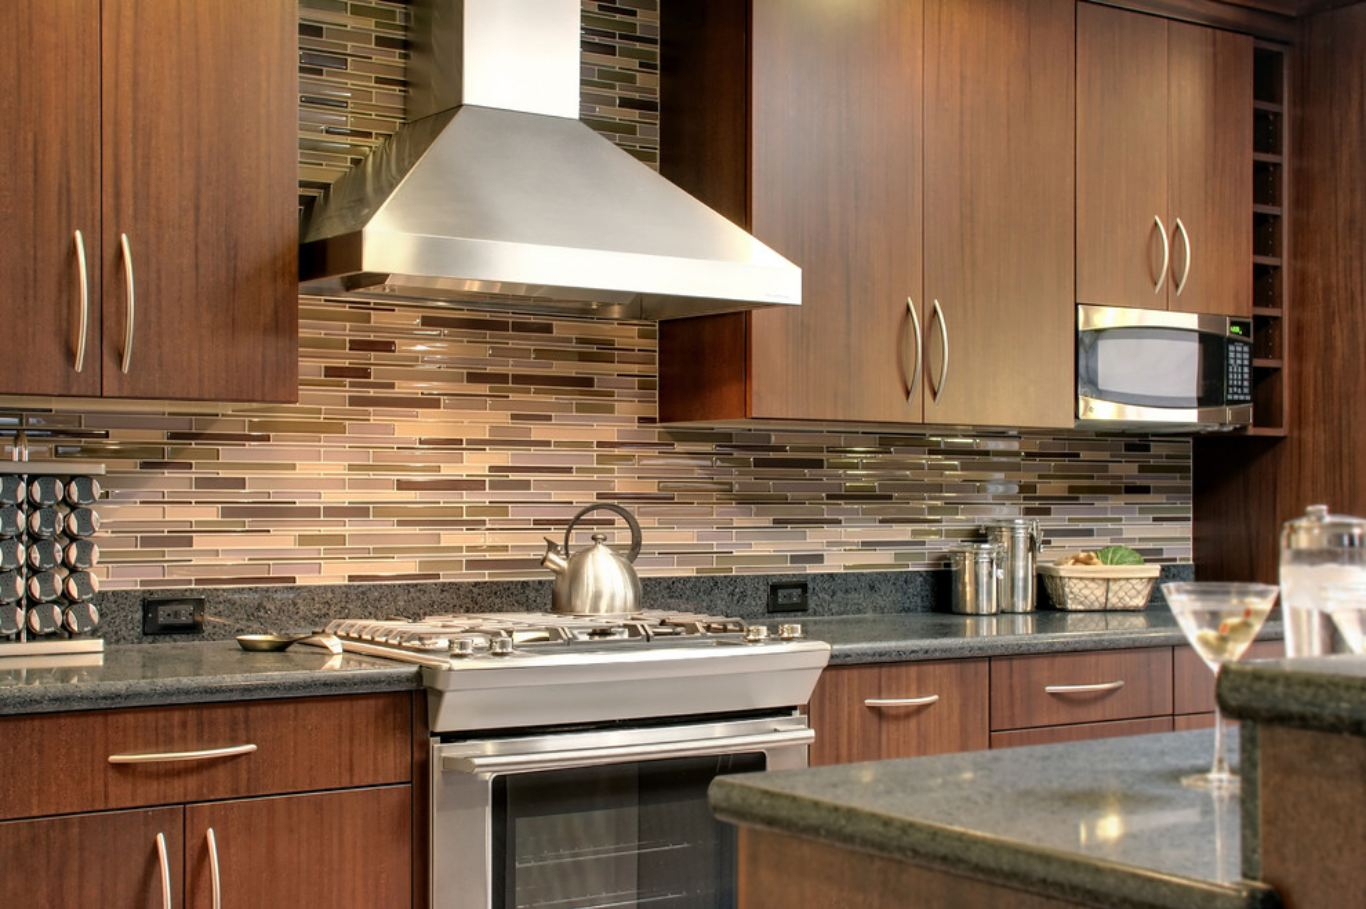 Brown glass tile designs for backsplash custom home design for Glass tile kitchen backsplash ideas